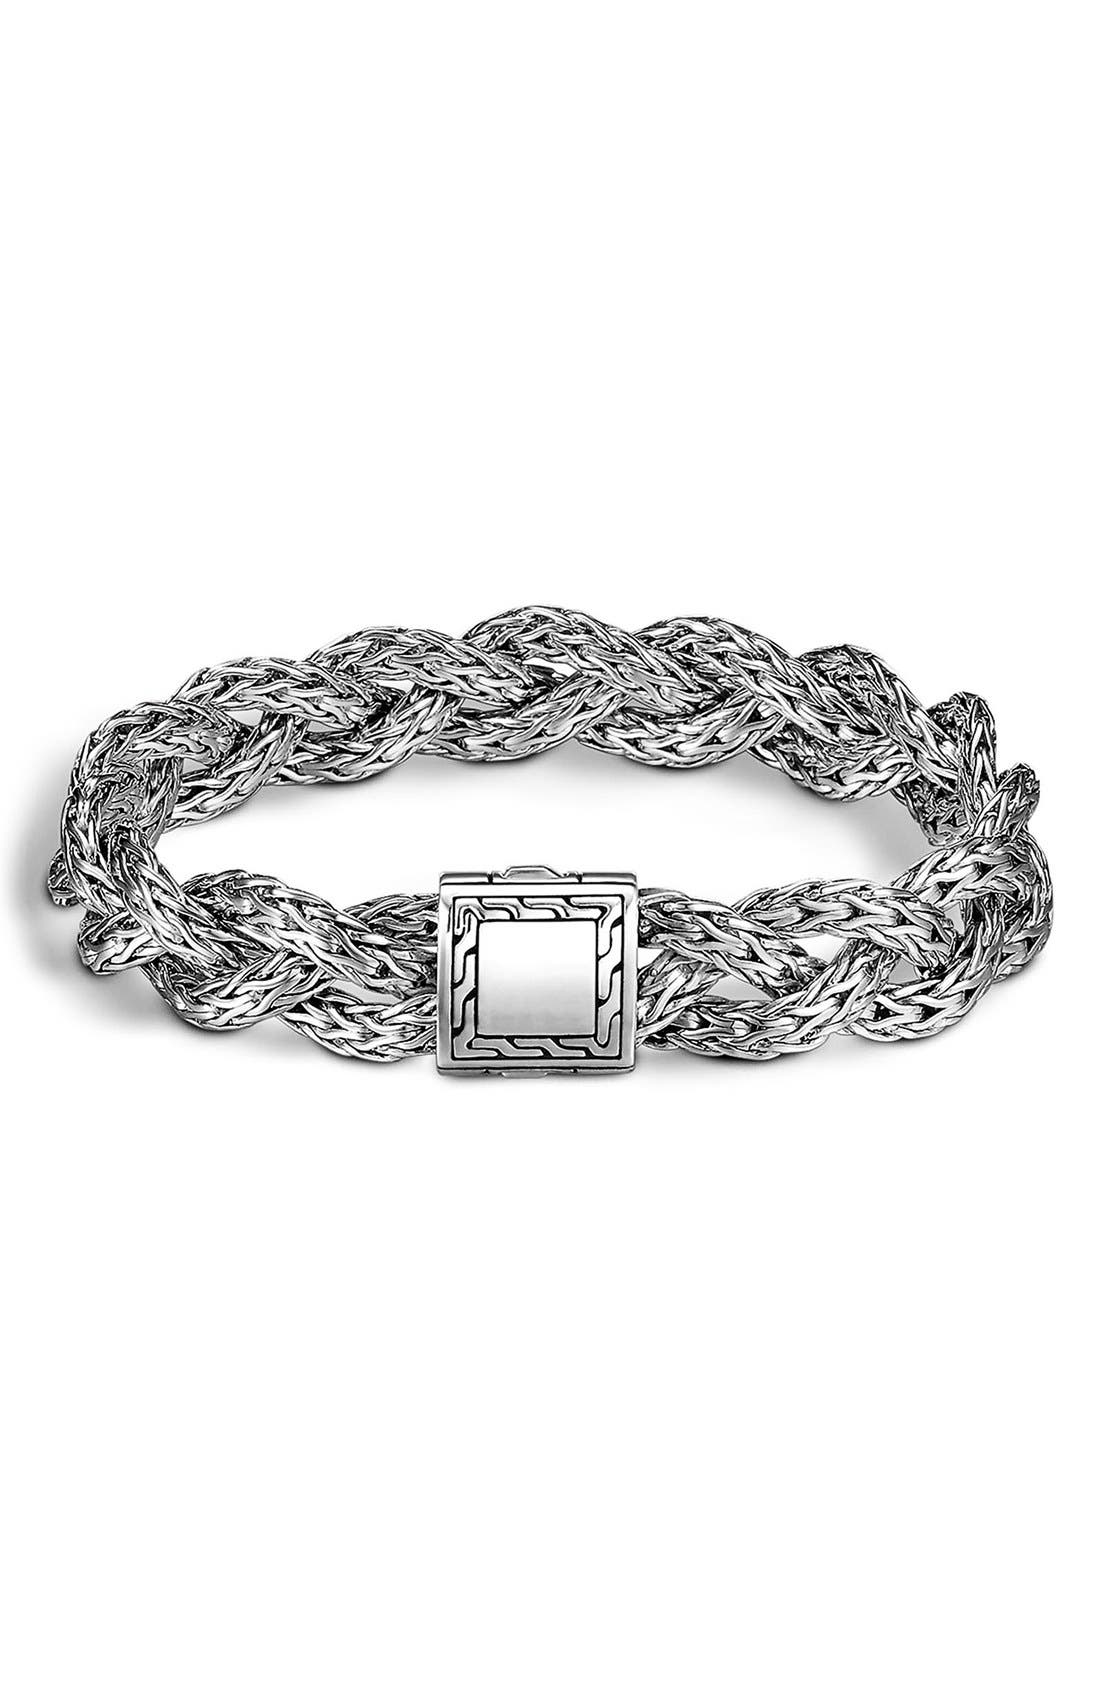 Alternate Image 1 Selected - John Hardy 'Classic Chain' Small Braided Bracelet